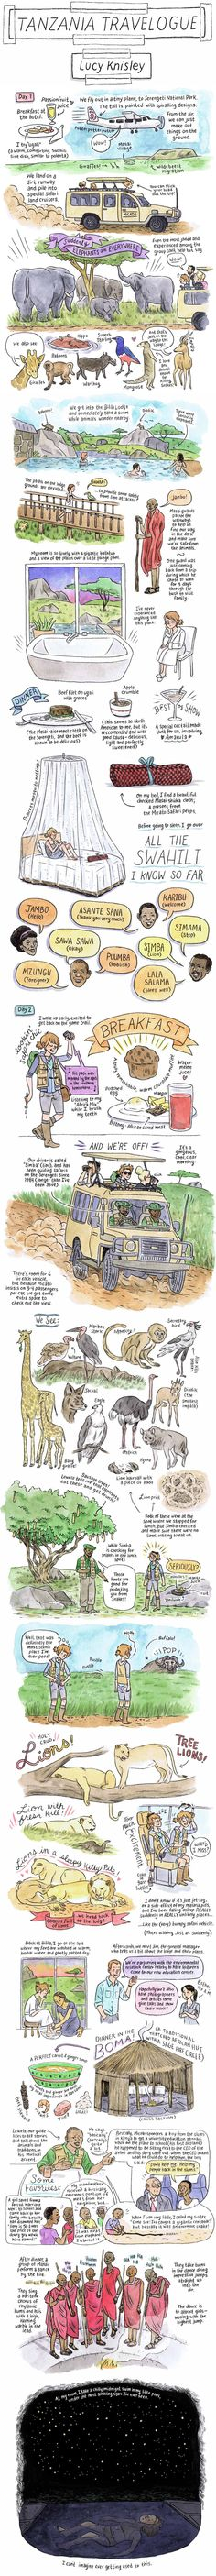 """Cartoonist Lucy Knisely shares part of the story of a recent trip through Qatar and Tanzania, which involves lion sightings, midnight swims, and many exclamations of """"wow""""."""